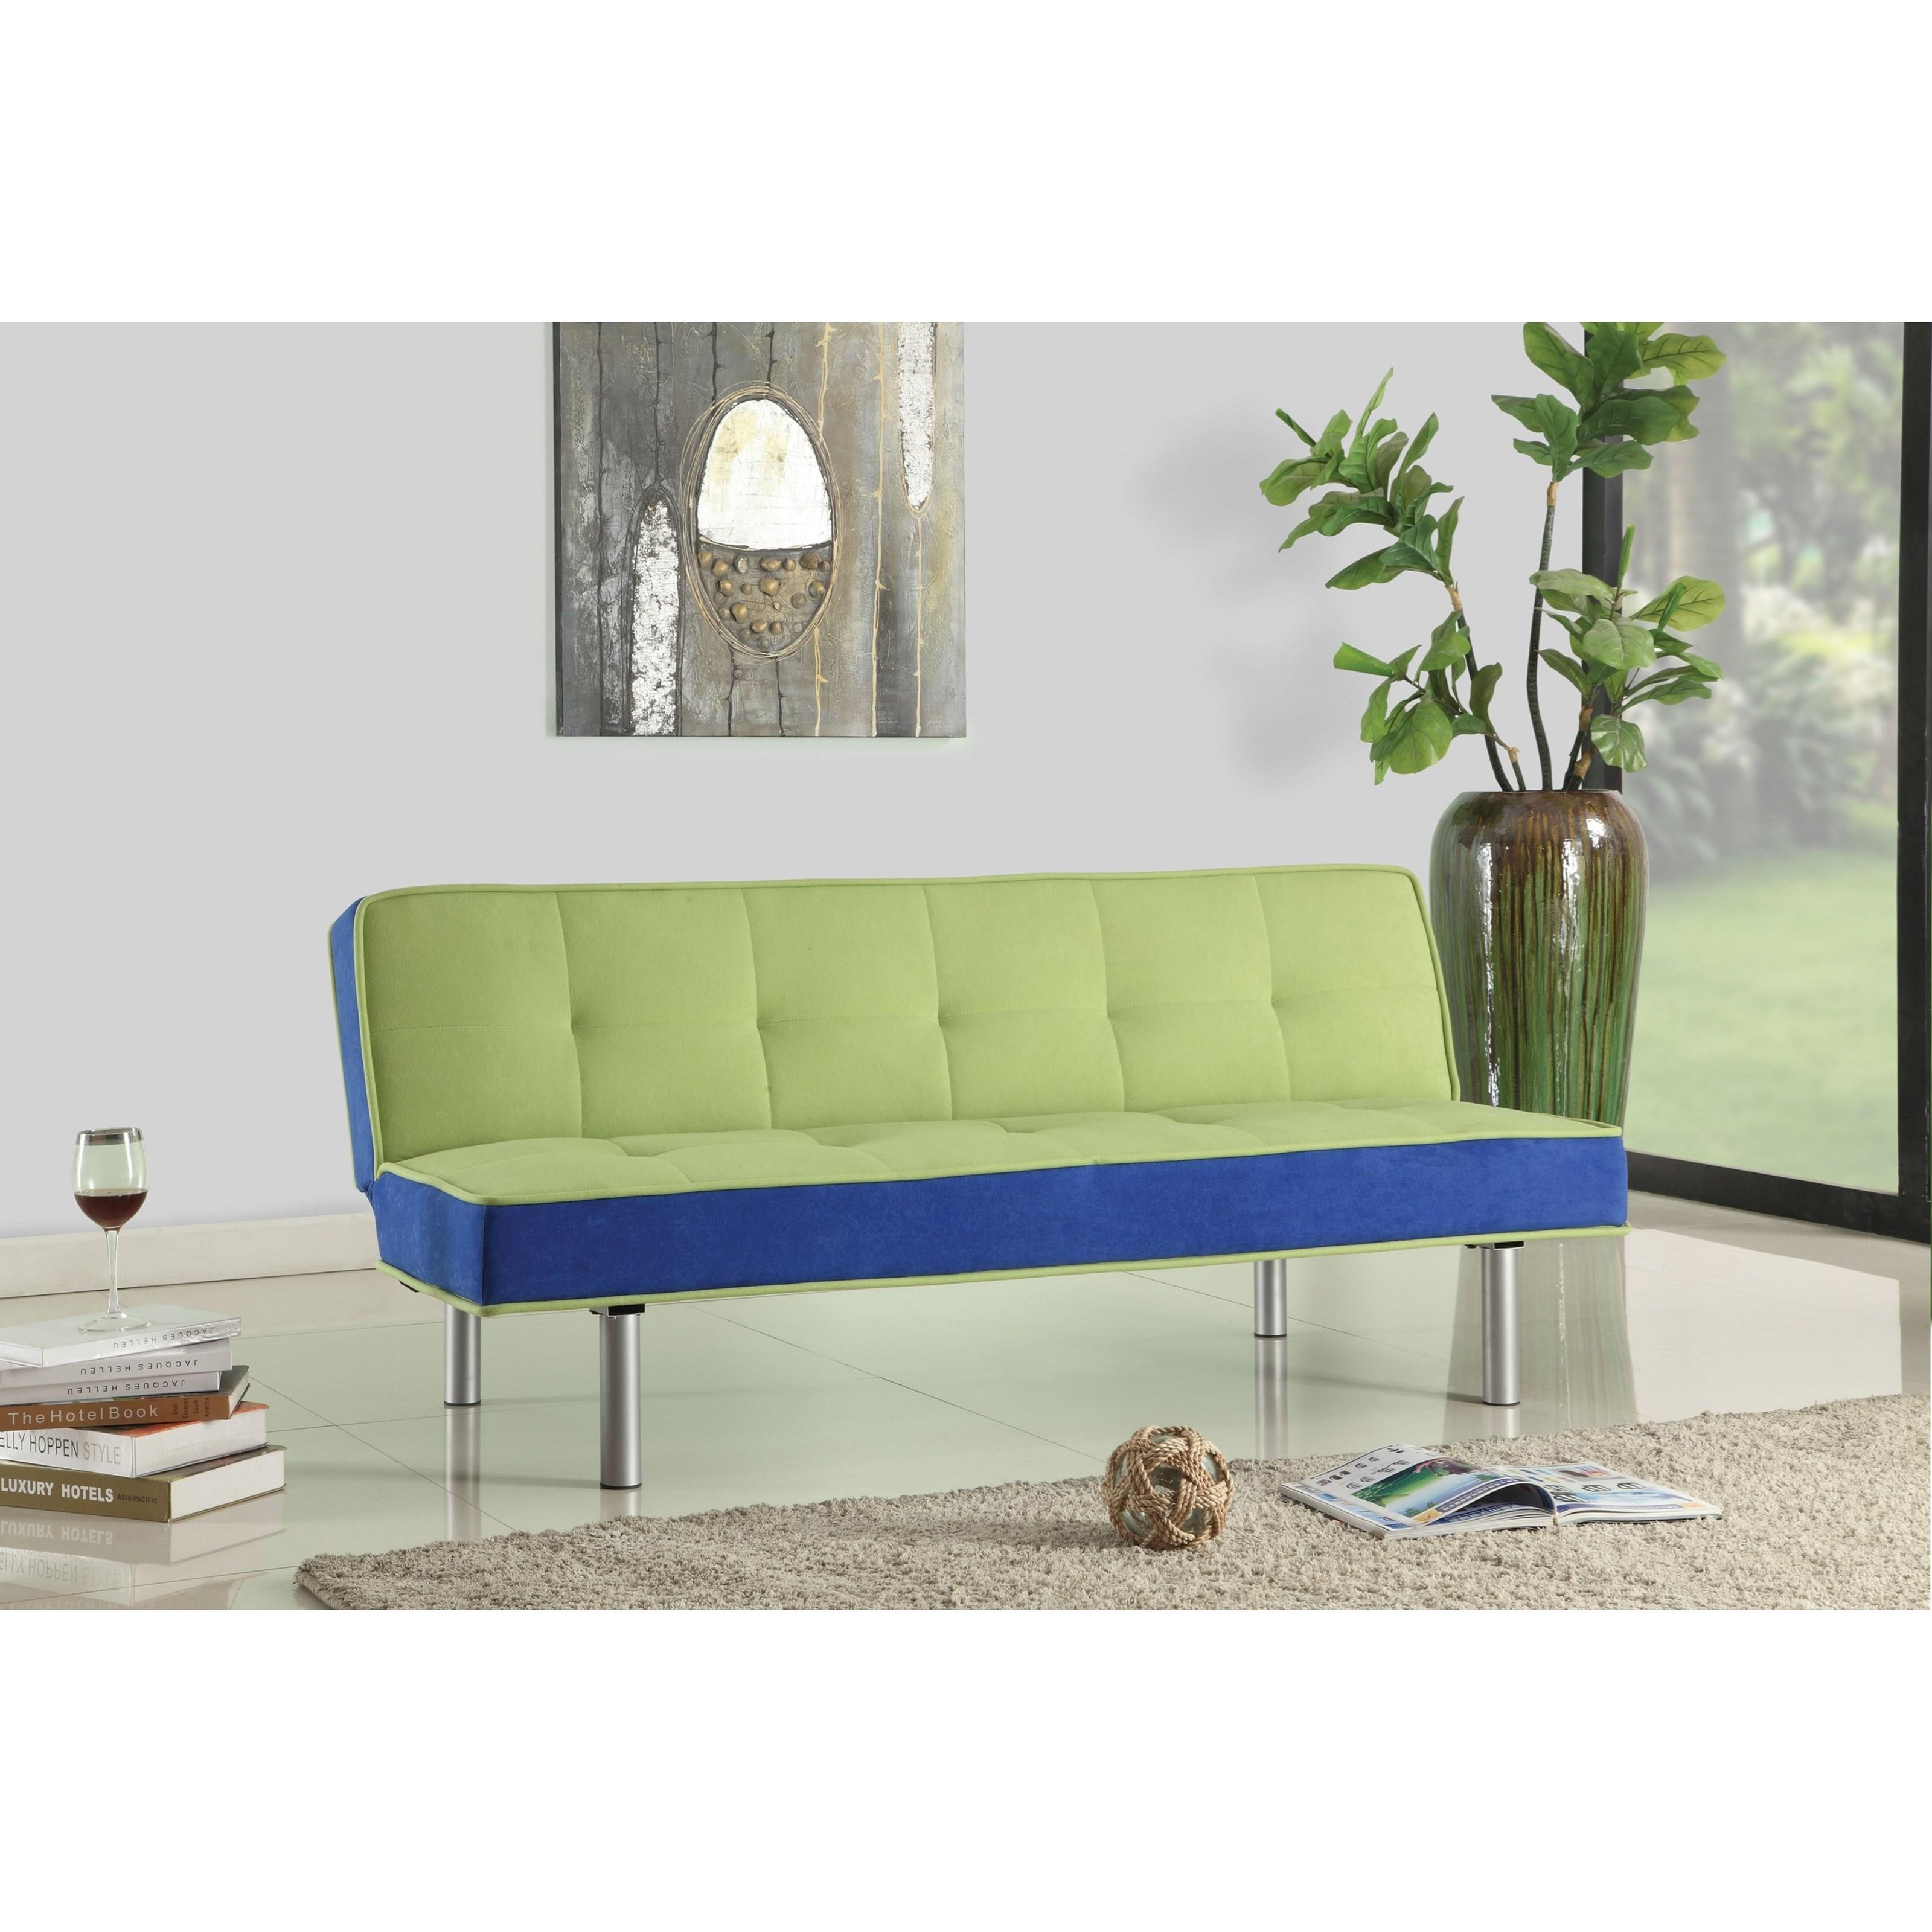 Hailey Adjustable Sofa by Acme Furniture at A1 Furniture & Mattress